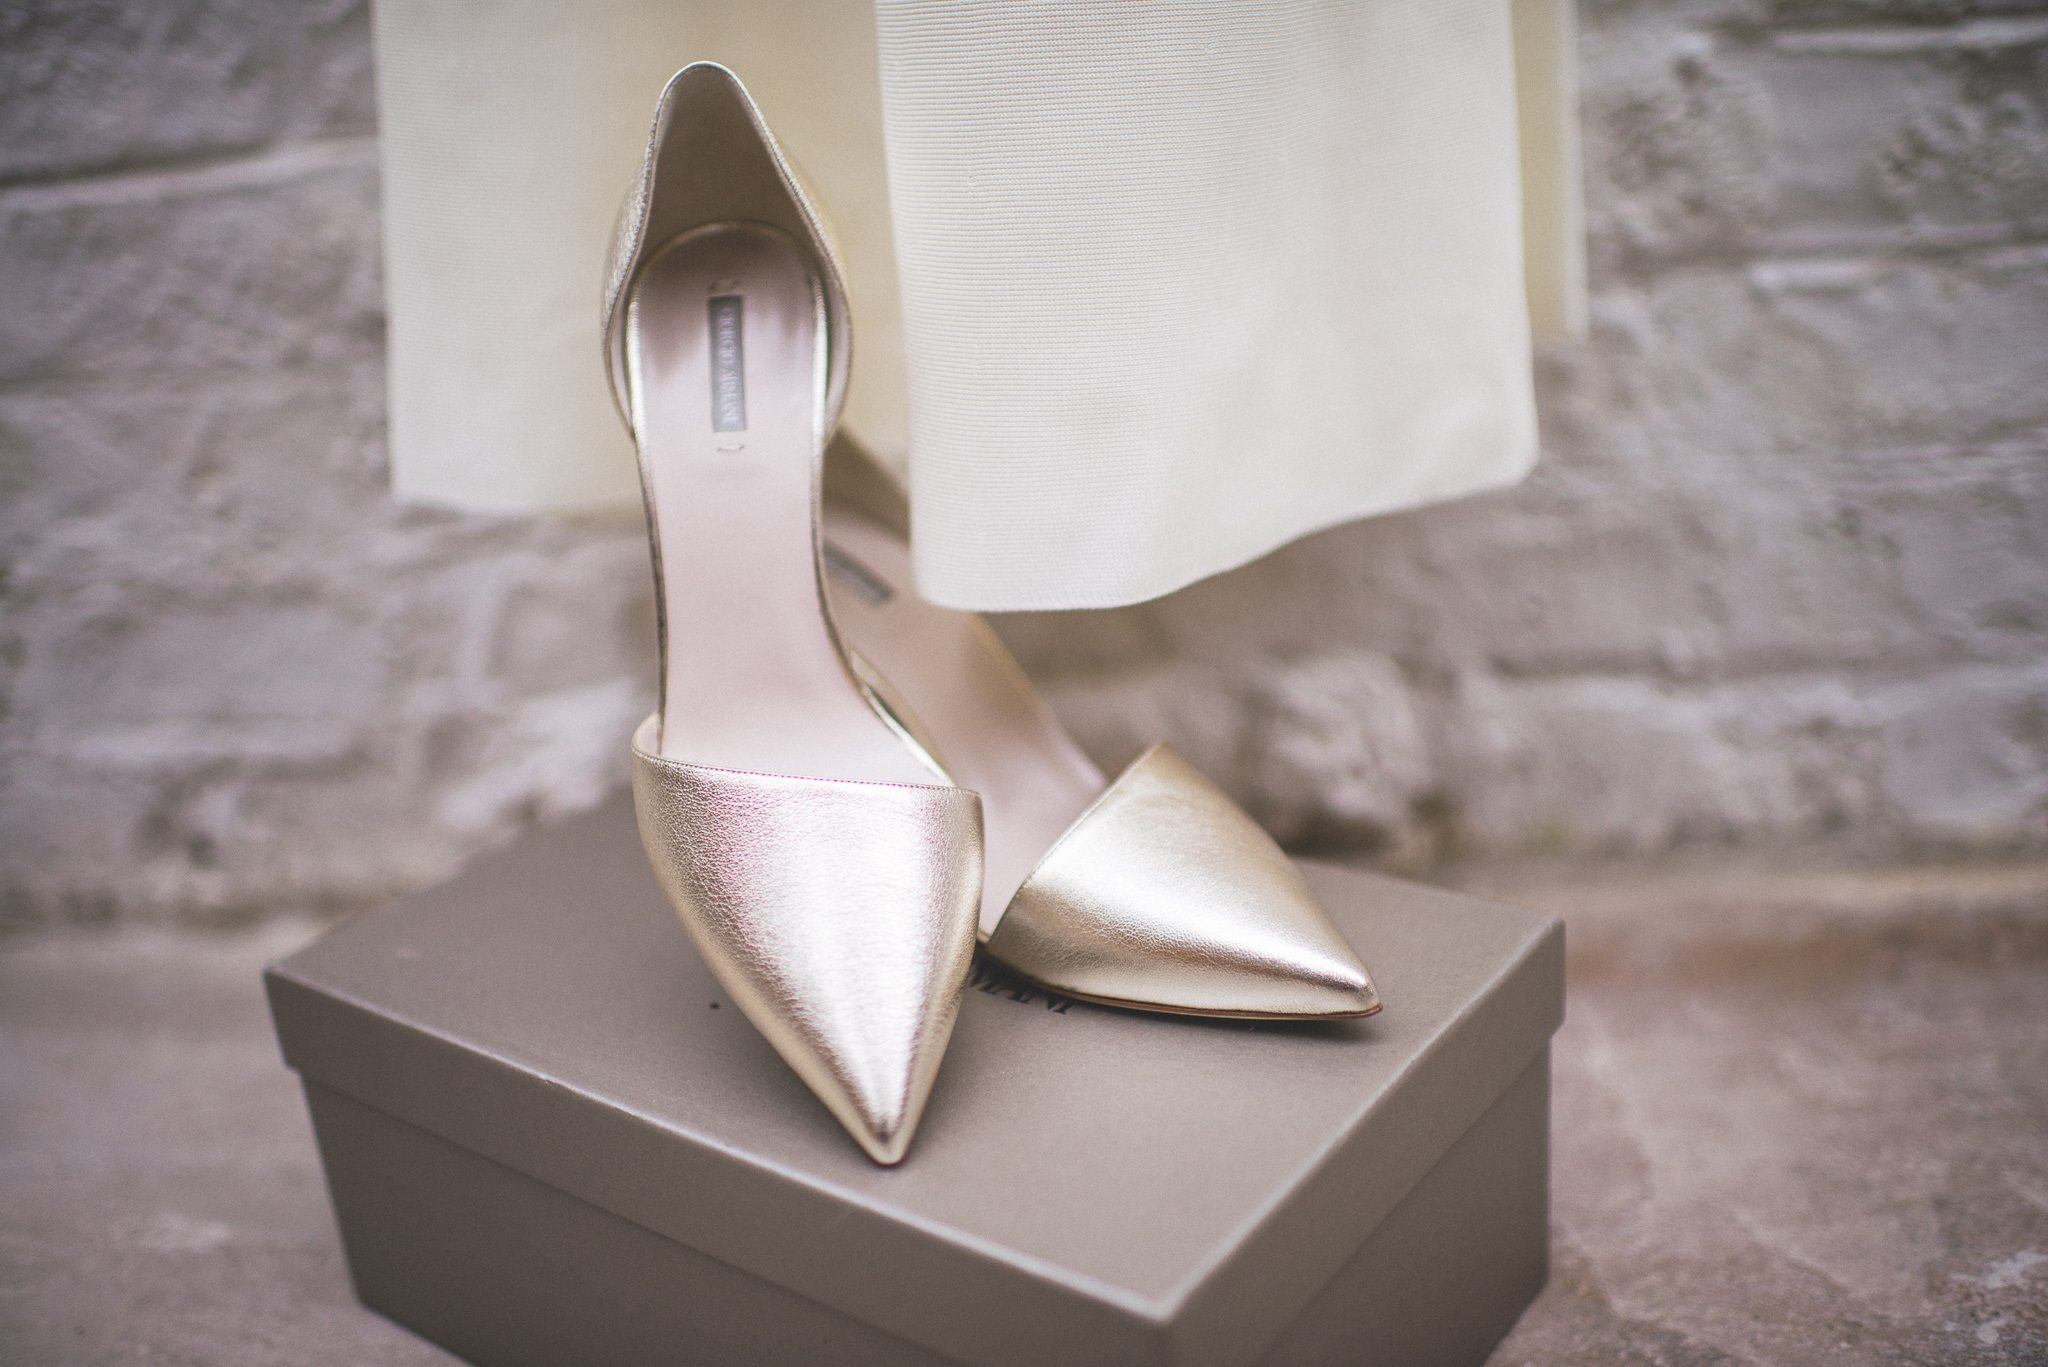 A close up of Ilaria's gold Armani stiletto heels